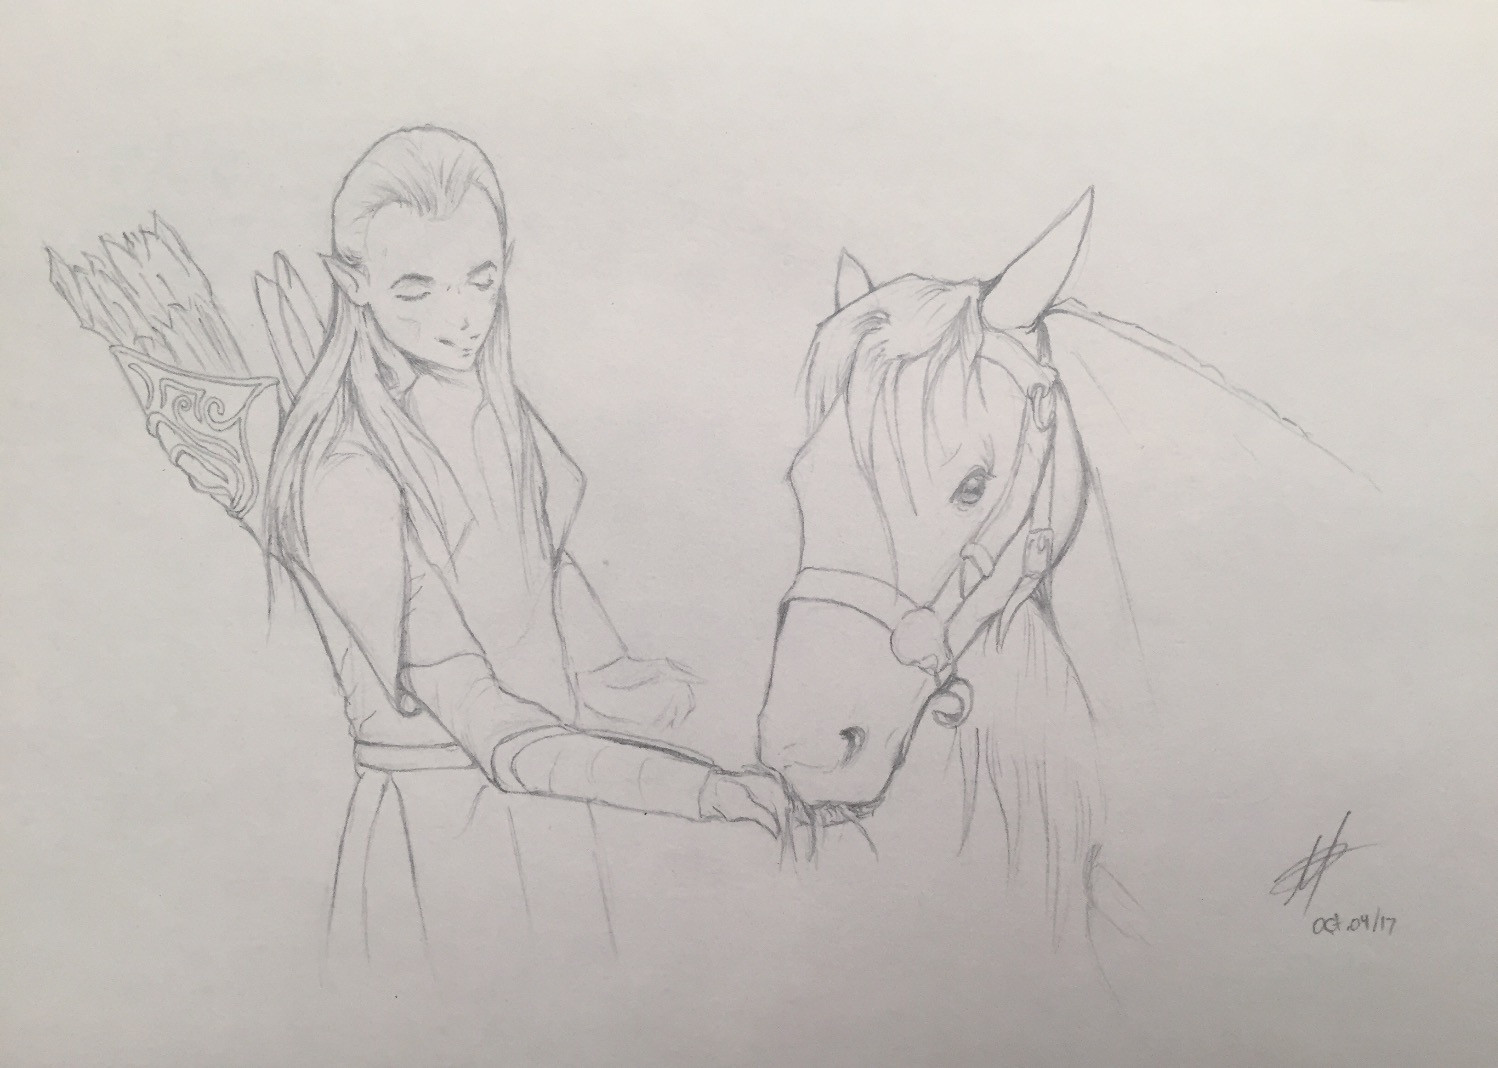 Legolas and Bill